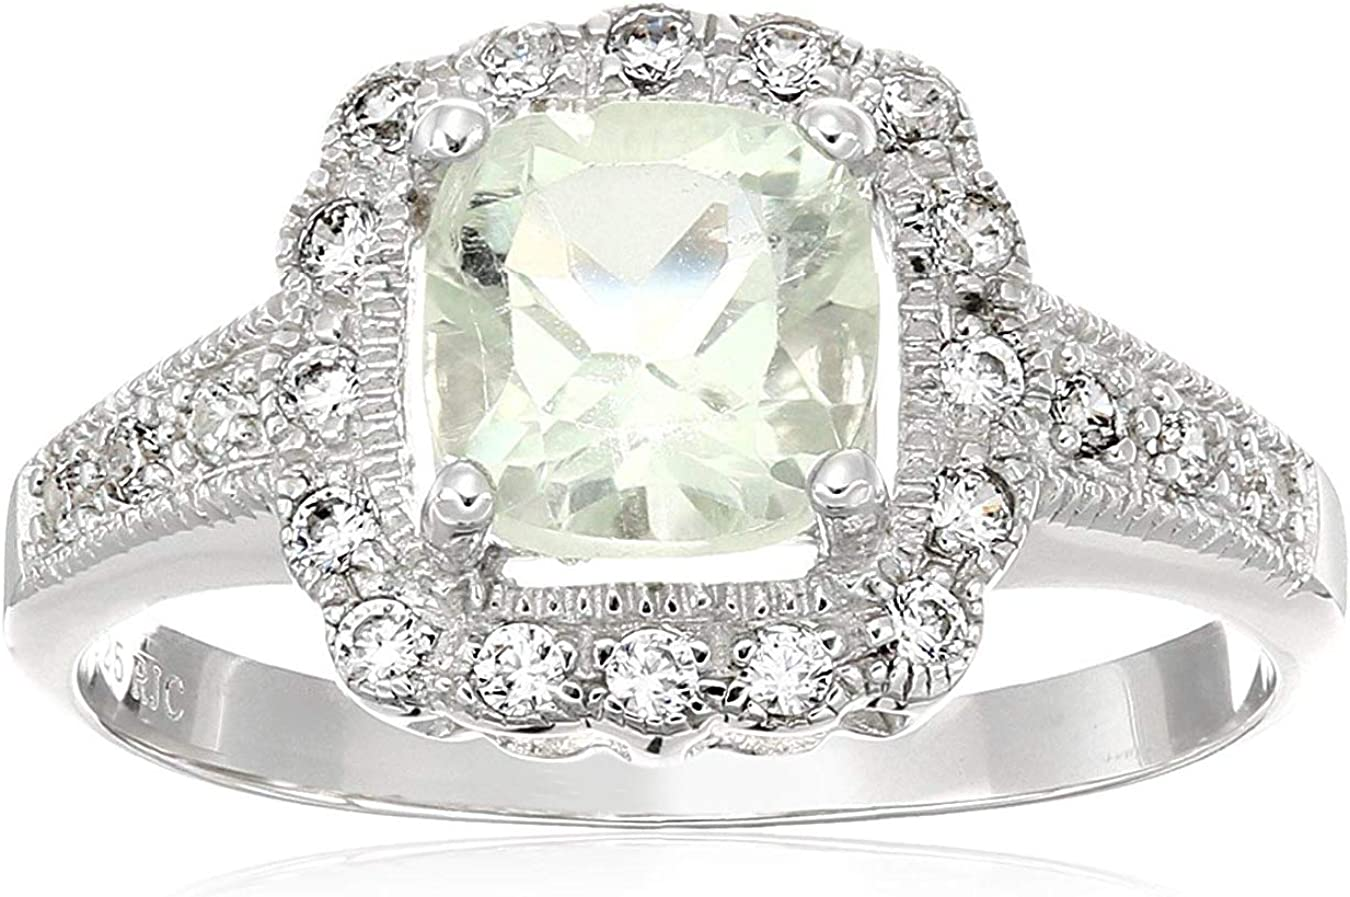 Spring new work one after another 1 cttw ! Super beauty product restock quality top! 7 MM Cushion Cut Green in .925 S Ring Prasiolite Amethyst